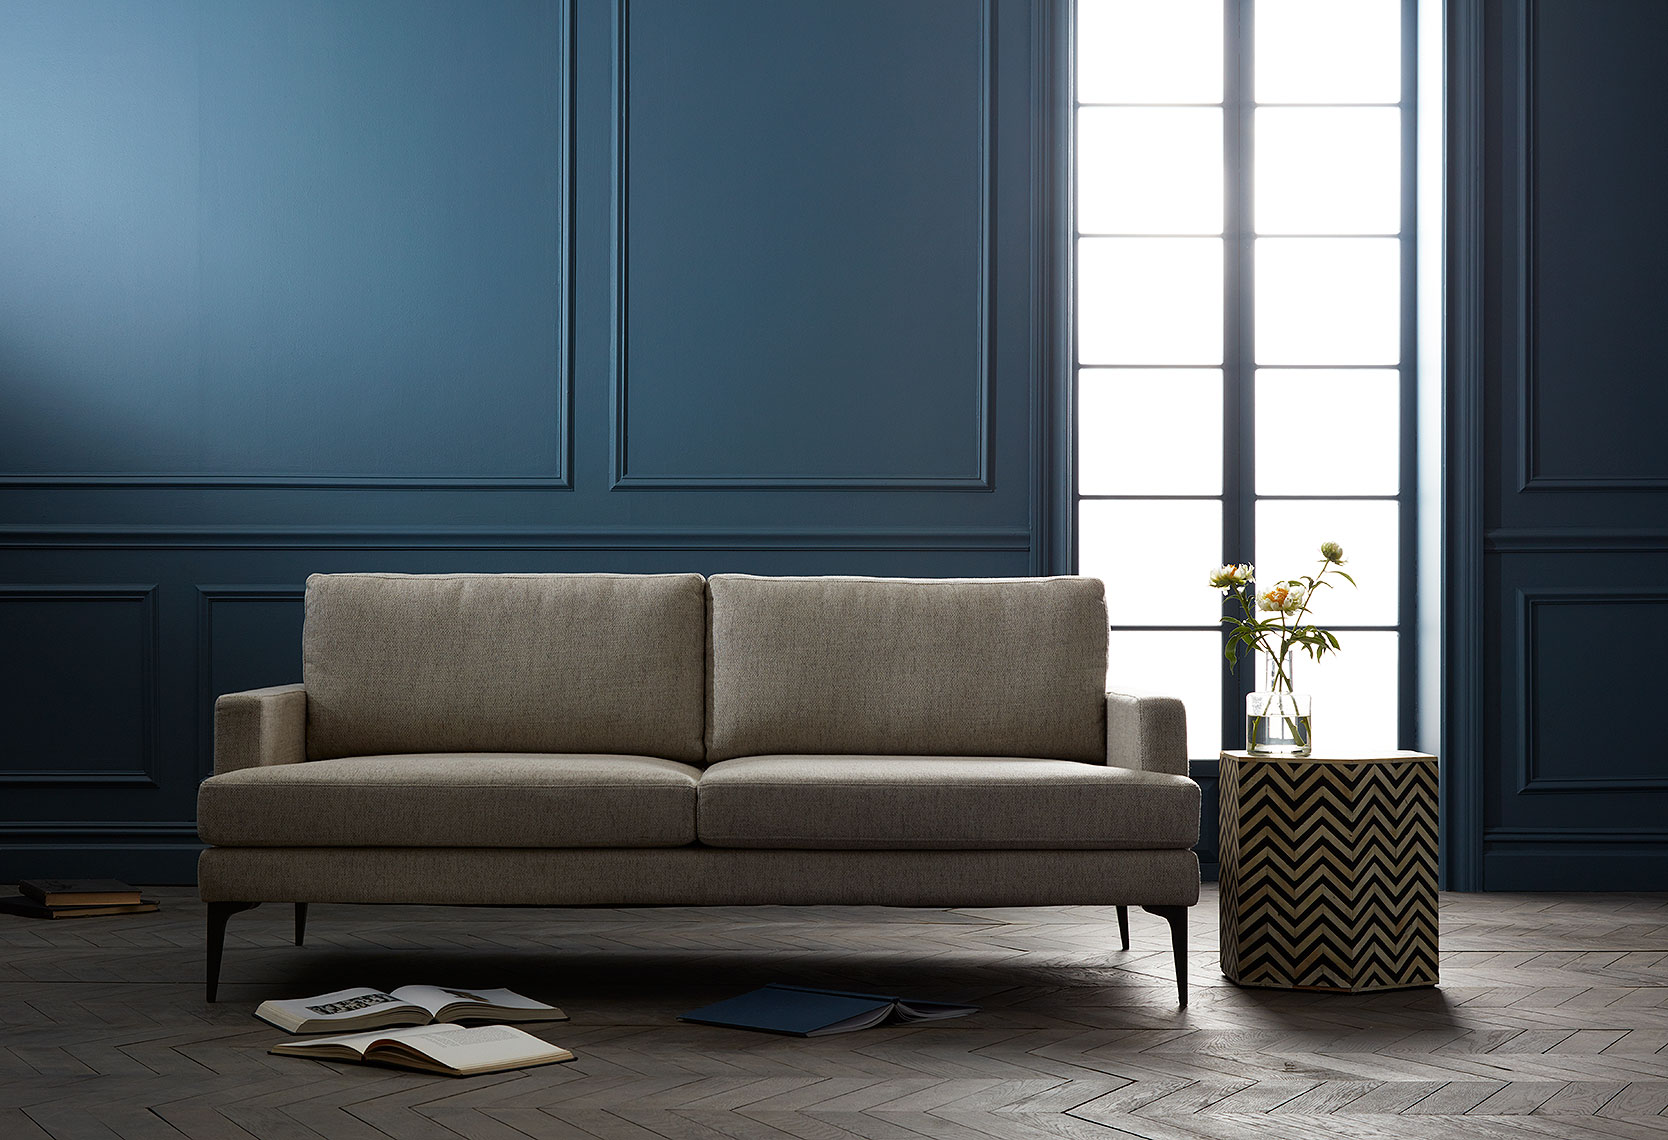 ecom-feature-andes-sofa-nn-homepage-fa16-137_YHK_Contrast